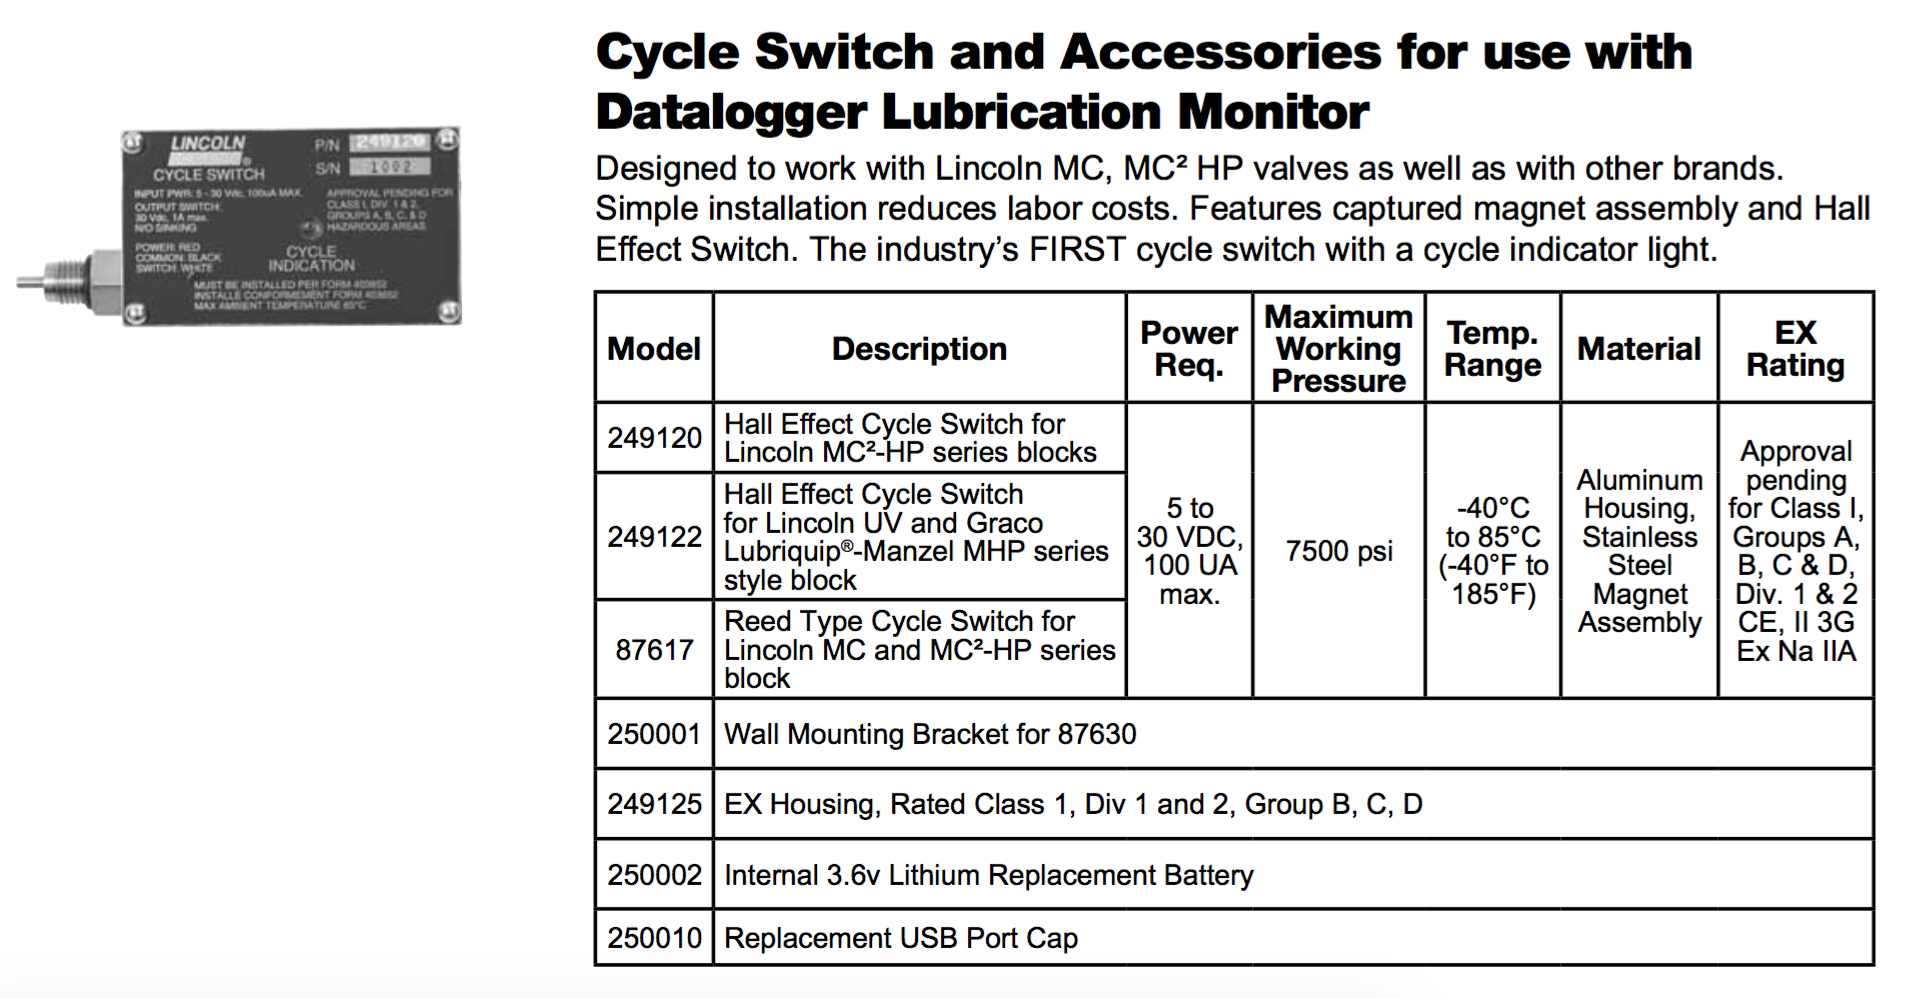 Lincoln Cycle Switch Automated Lubrication